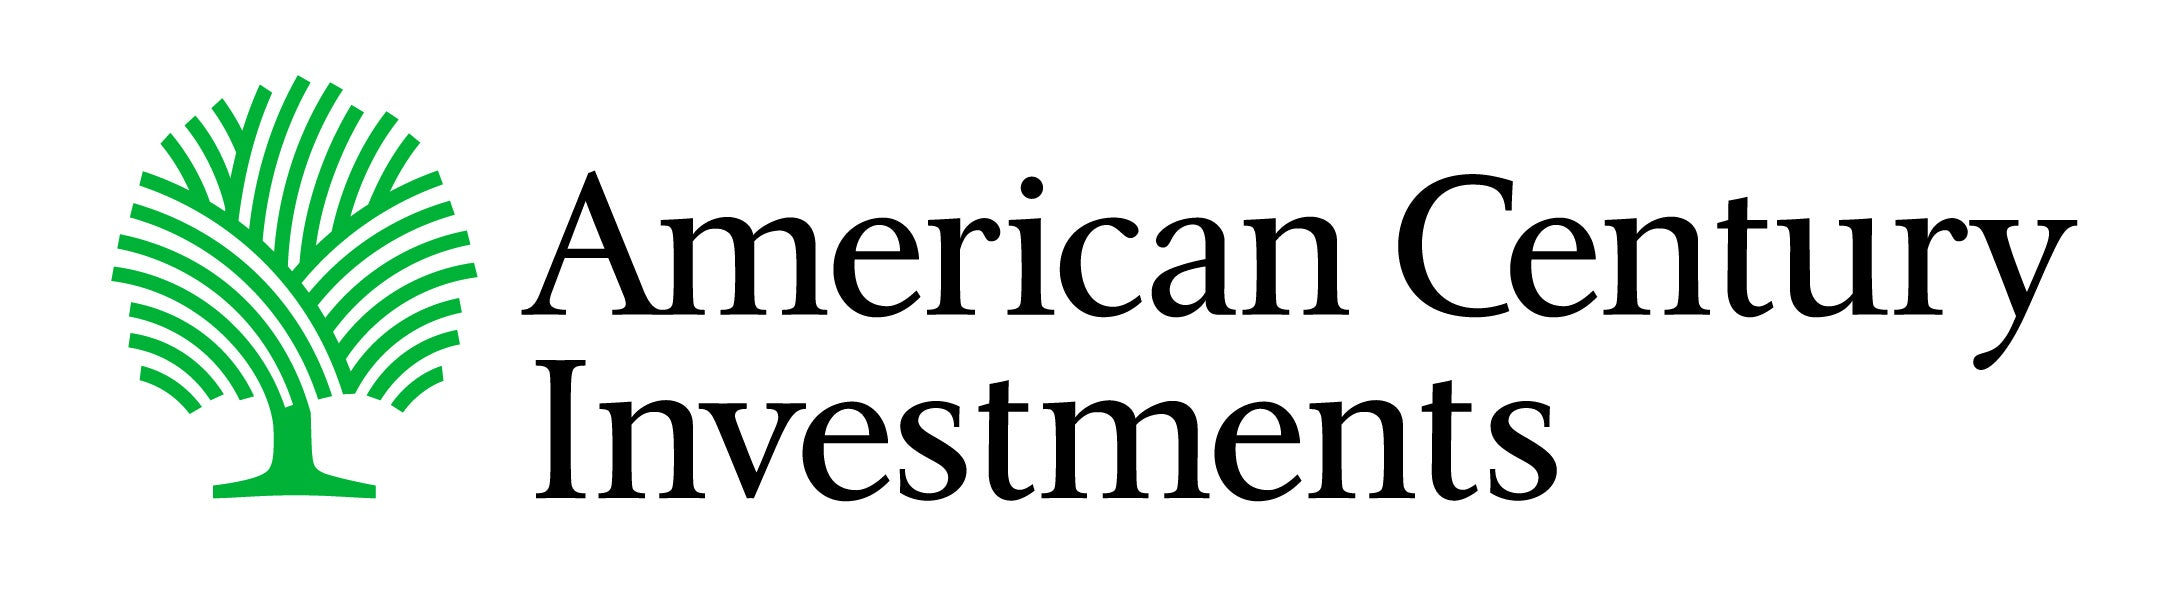 Logo of American Century investment manager